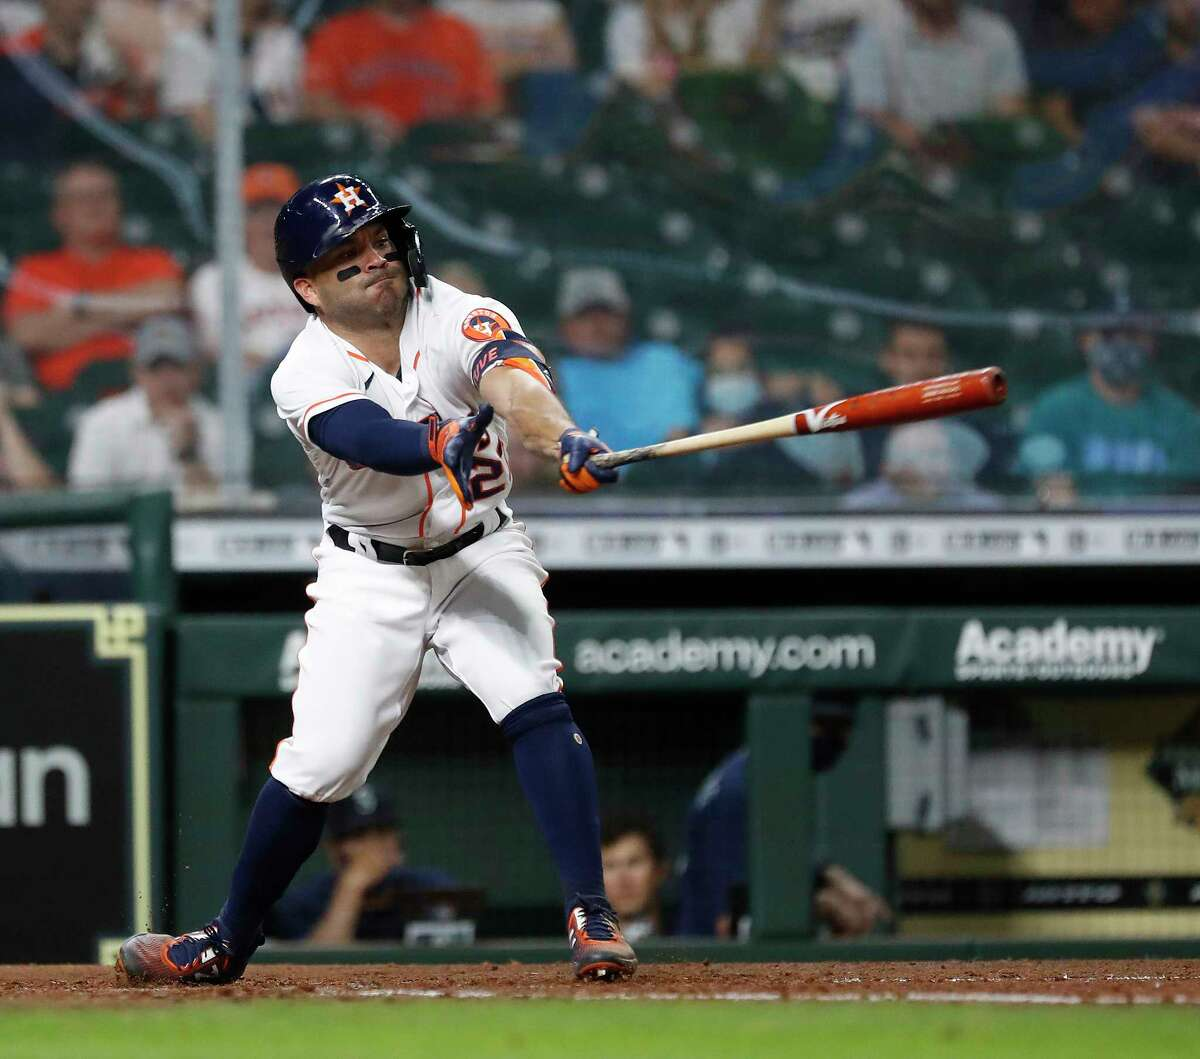 Houston Astros Jose Altuve (27) strikes out against Seattle Mariners relief pitcher Kendall Graveman during the seventh inning of an MLB baseball game at Minute Maid Park, Tuesday, April 27, 2021, in Houston.